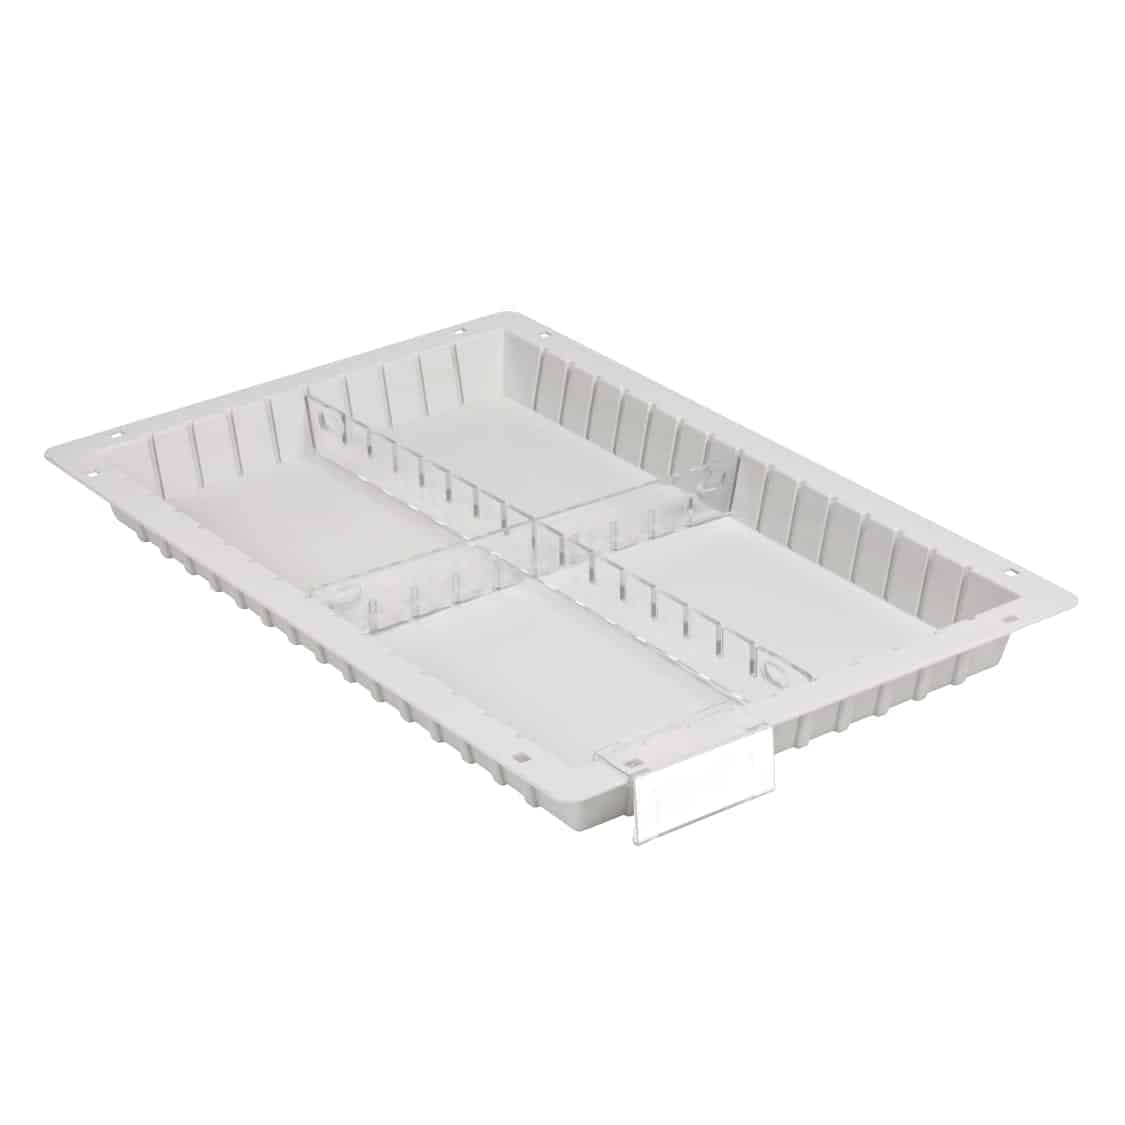 ABS dividable tray (Medium)